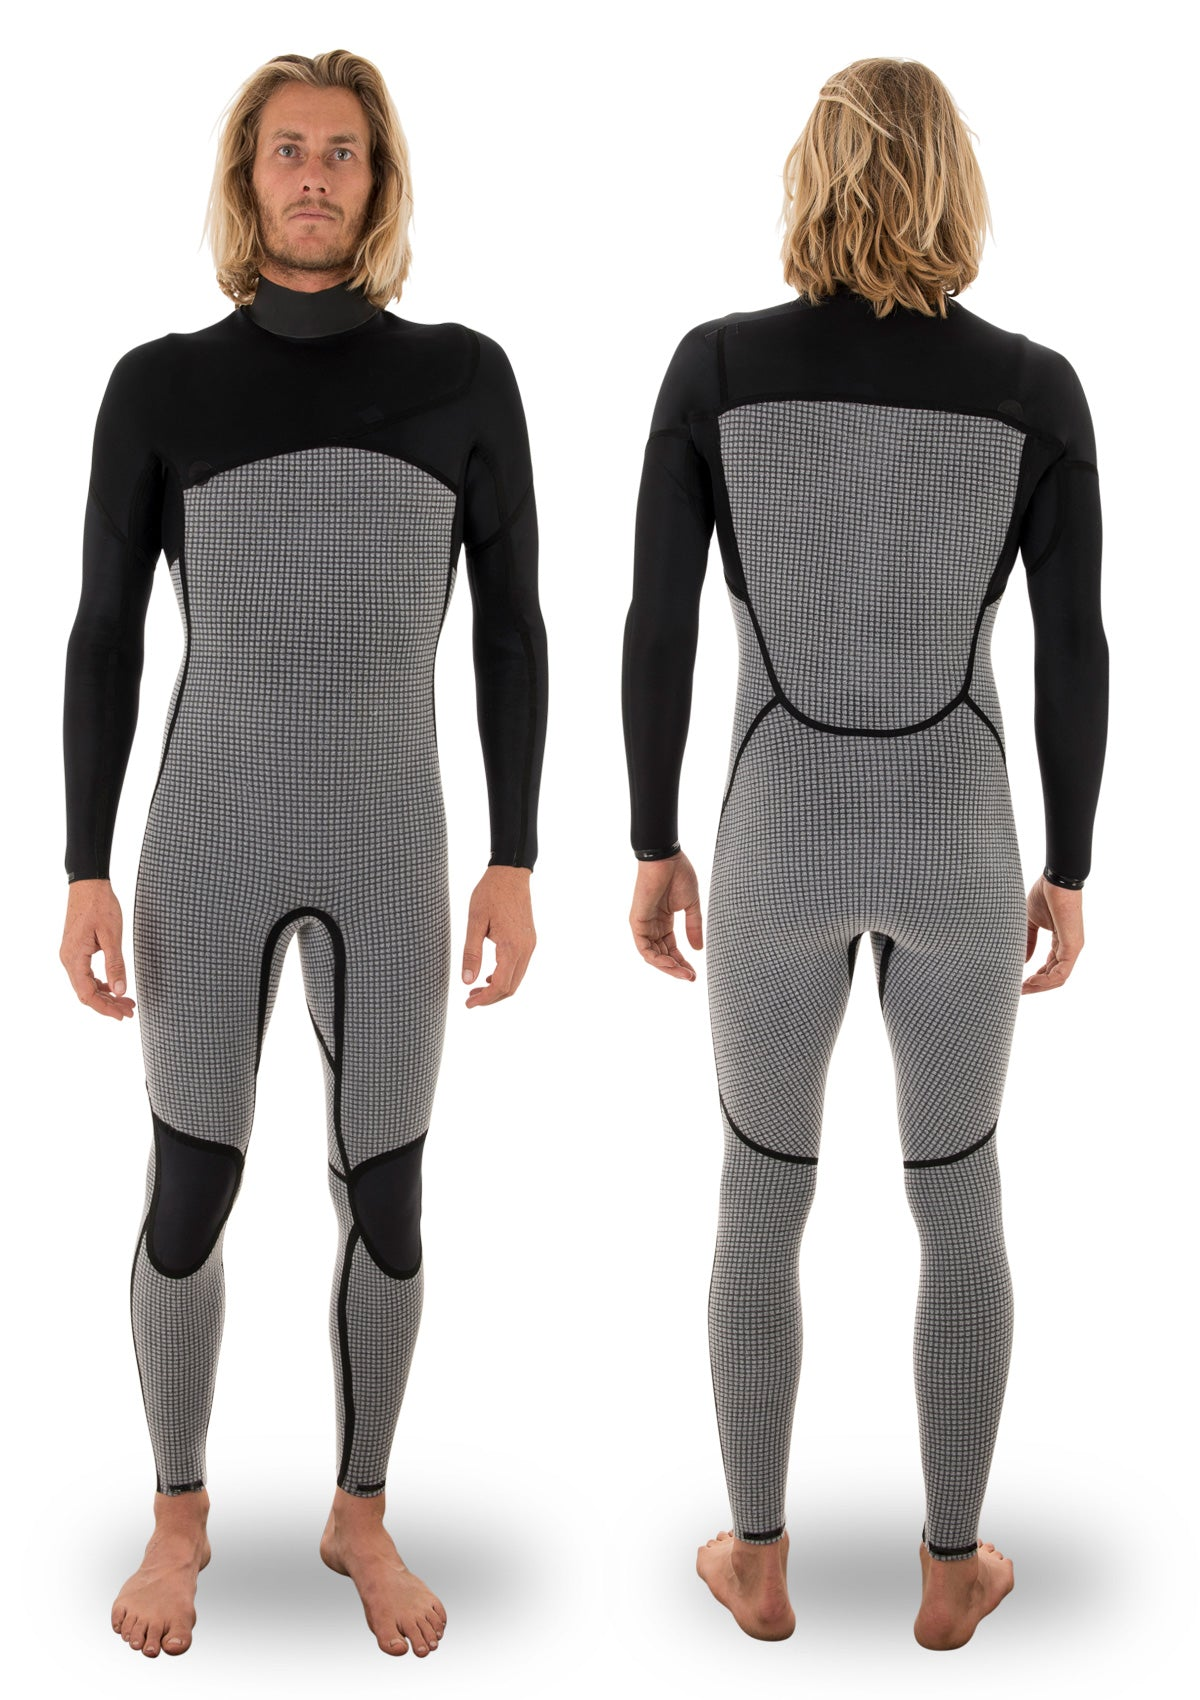 needessentials 4/3 liquid taped thermal wetsuit torren martyn surfing winter